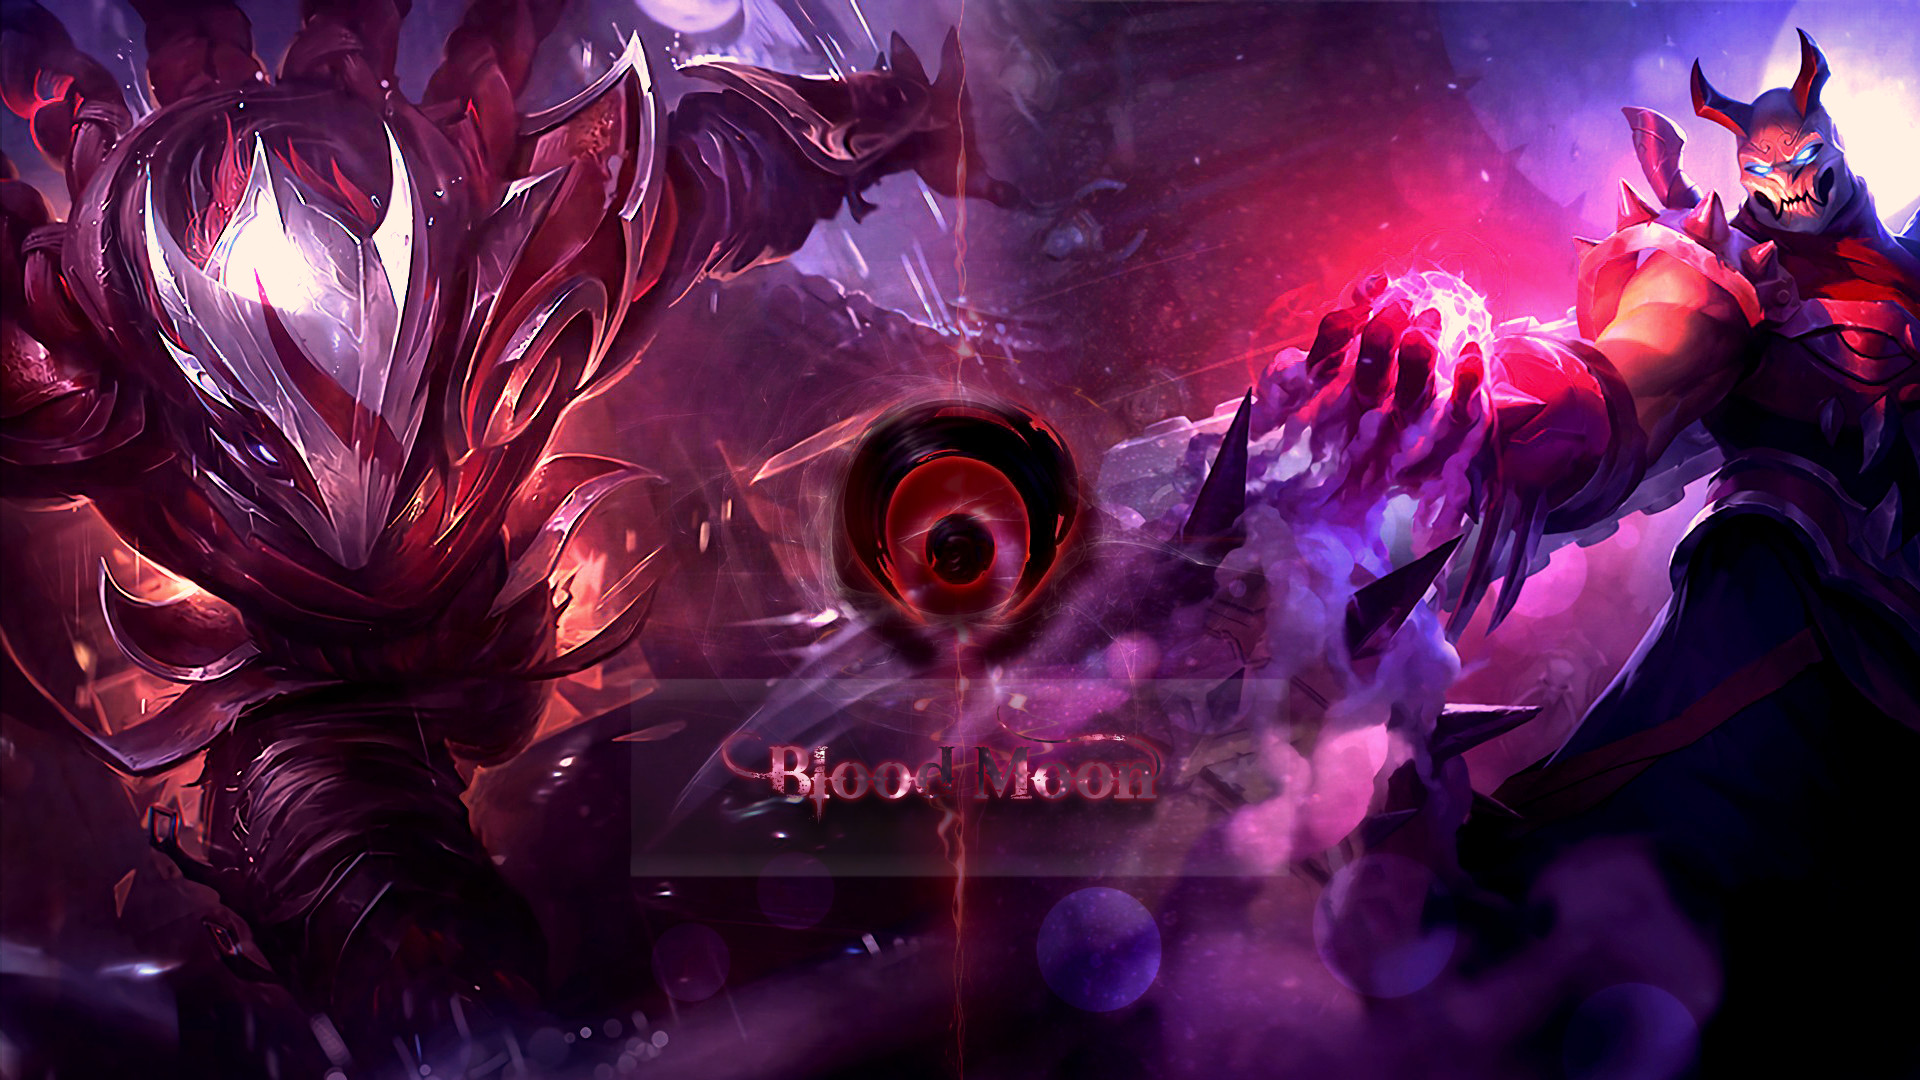 Res: 1920x1080, Another Talon wallpaper Talon and Shen blood moon. ;p ...